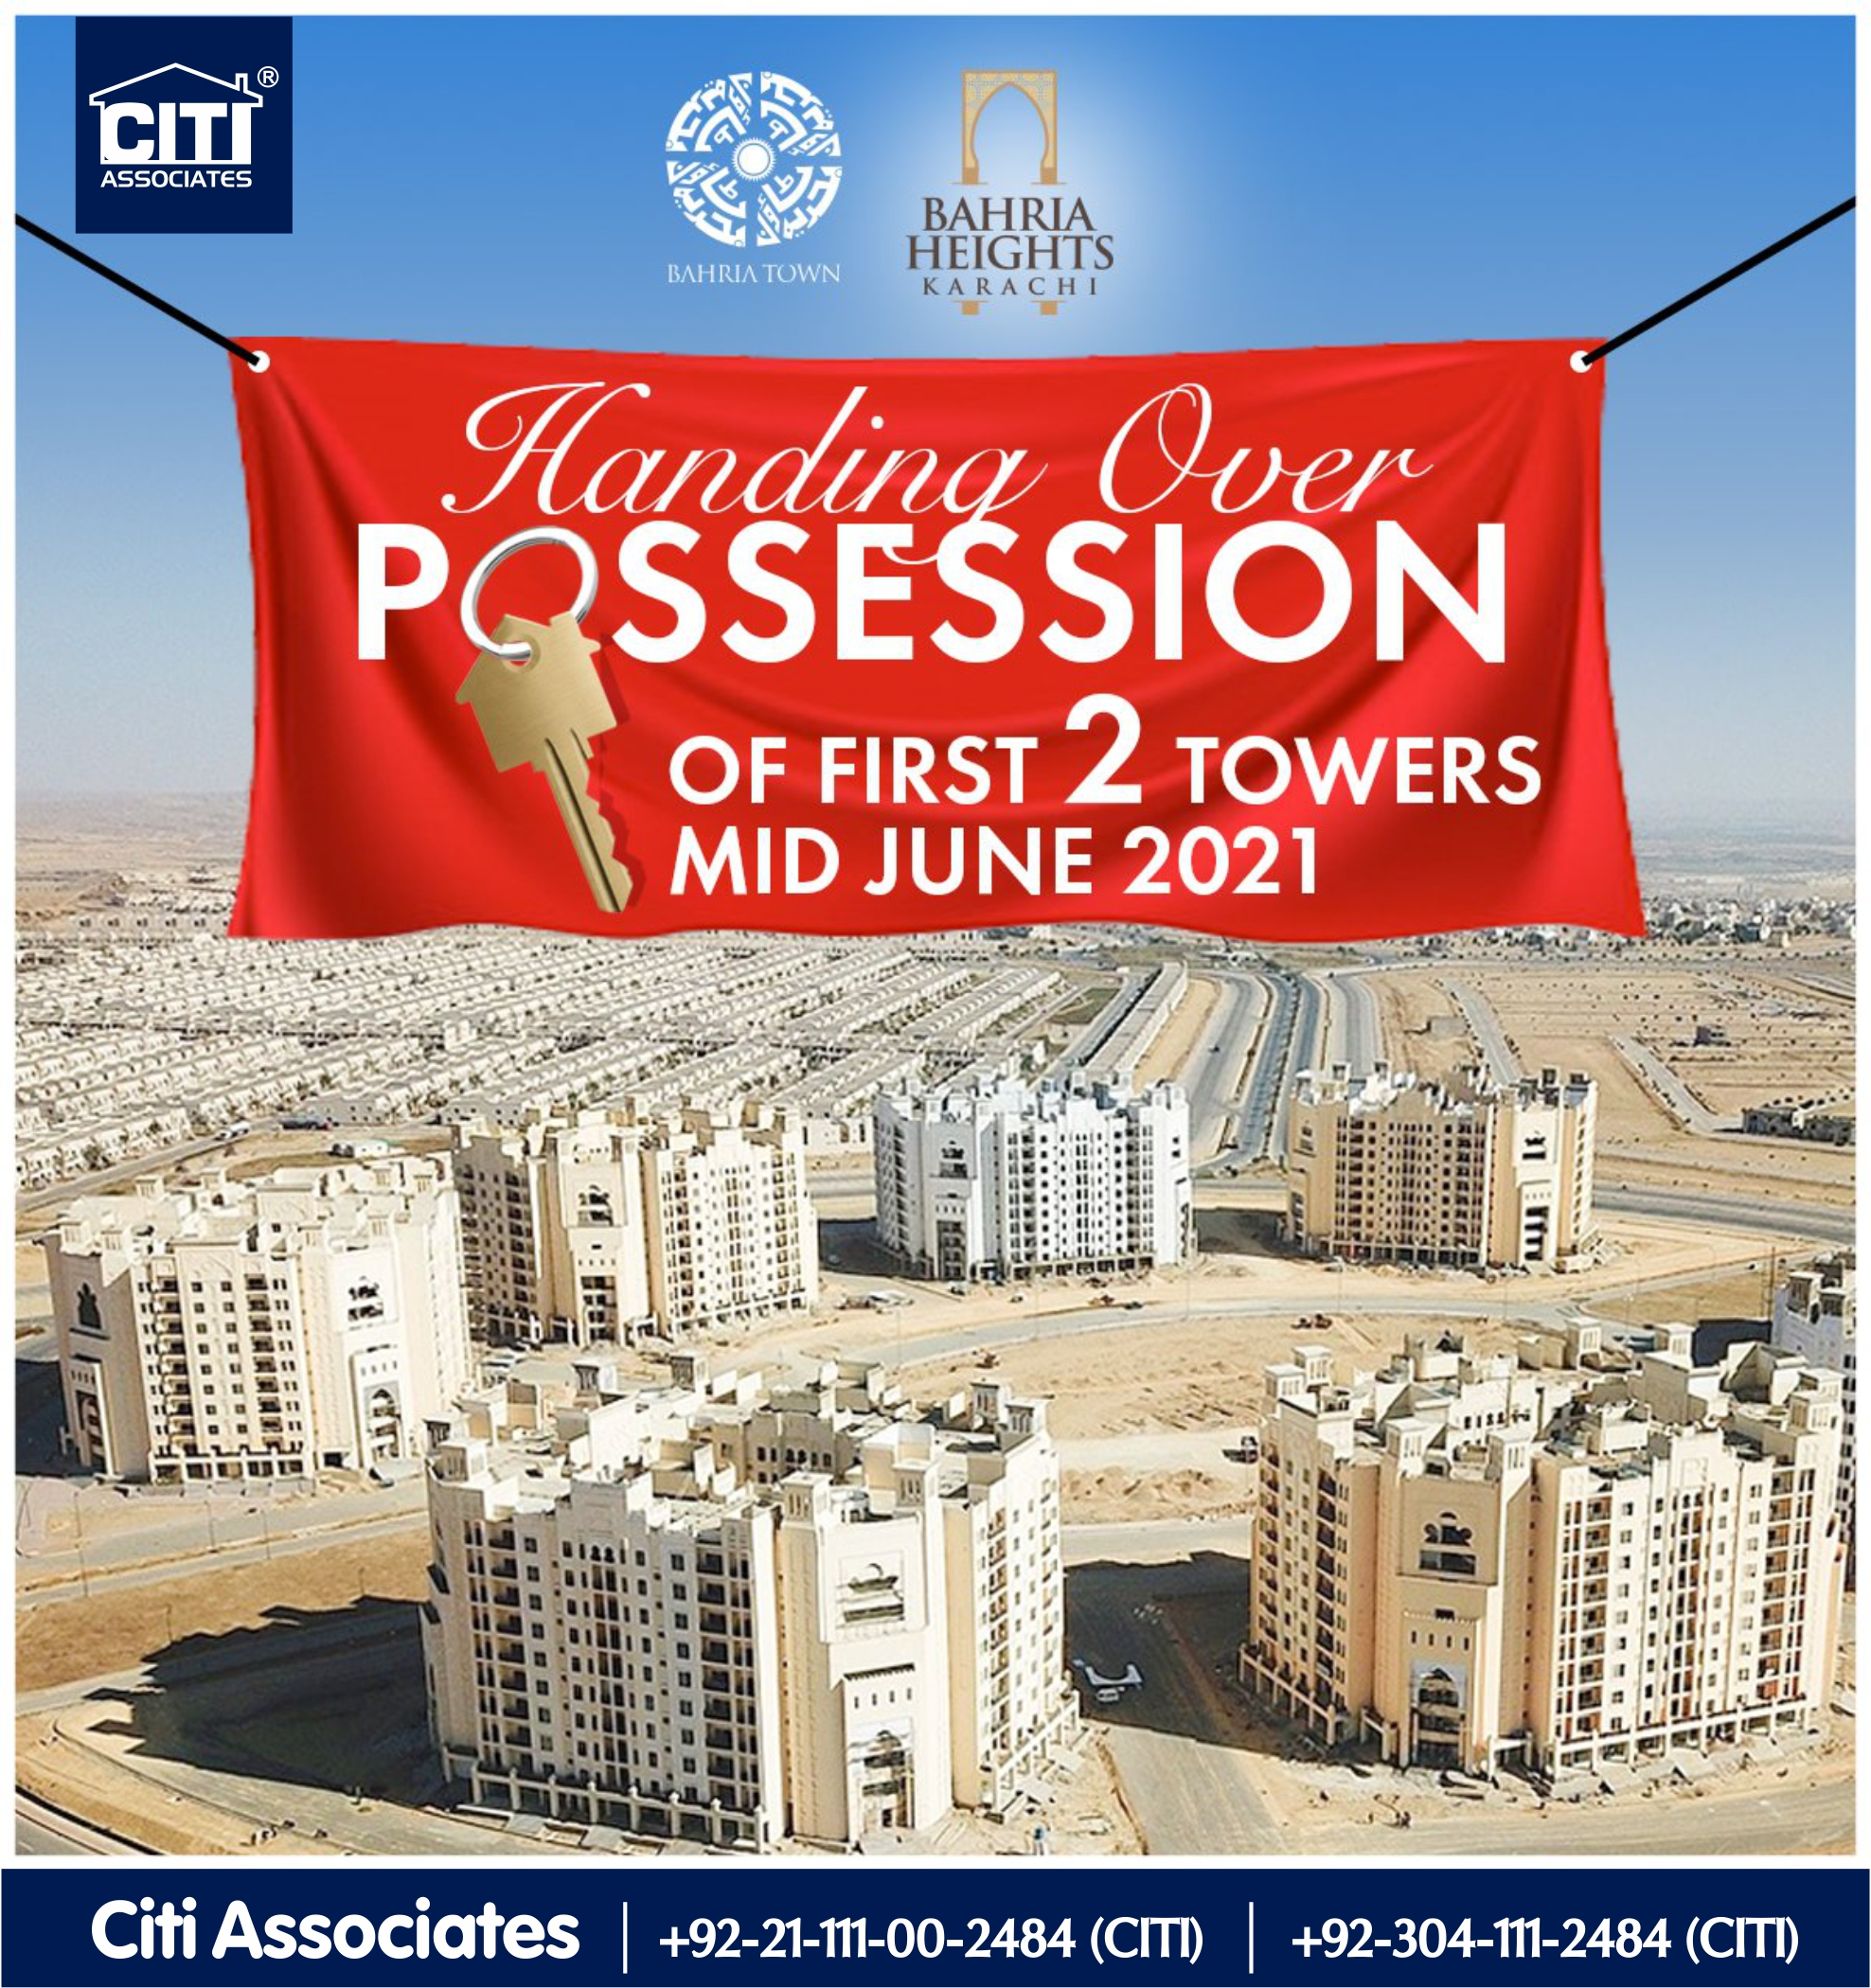 Handing Over Possession of First 2 Towers – Mid June 2021 | Bahria Town Karachi